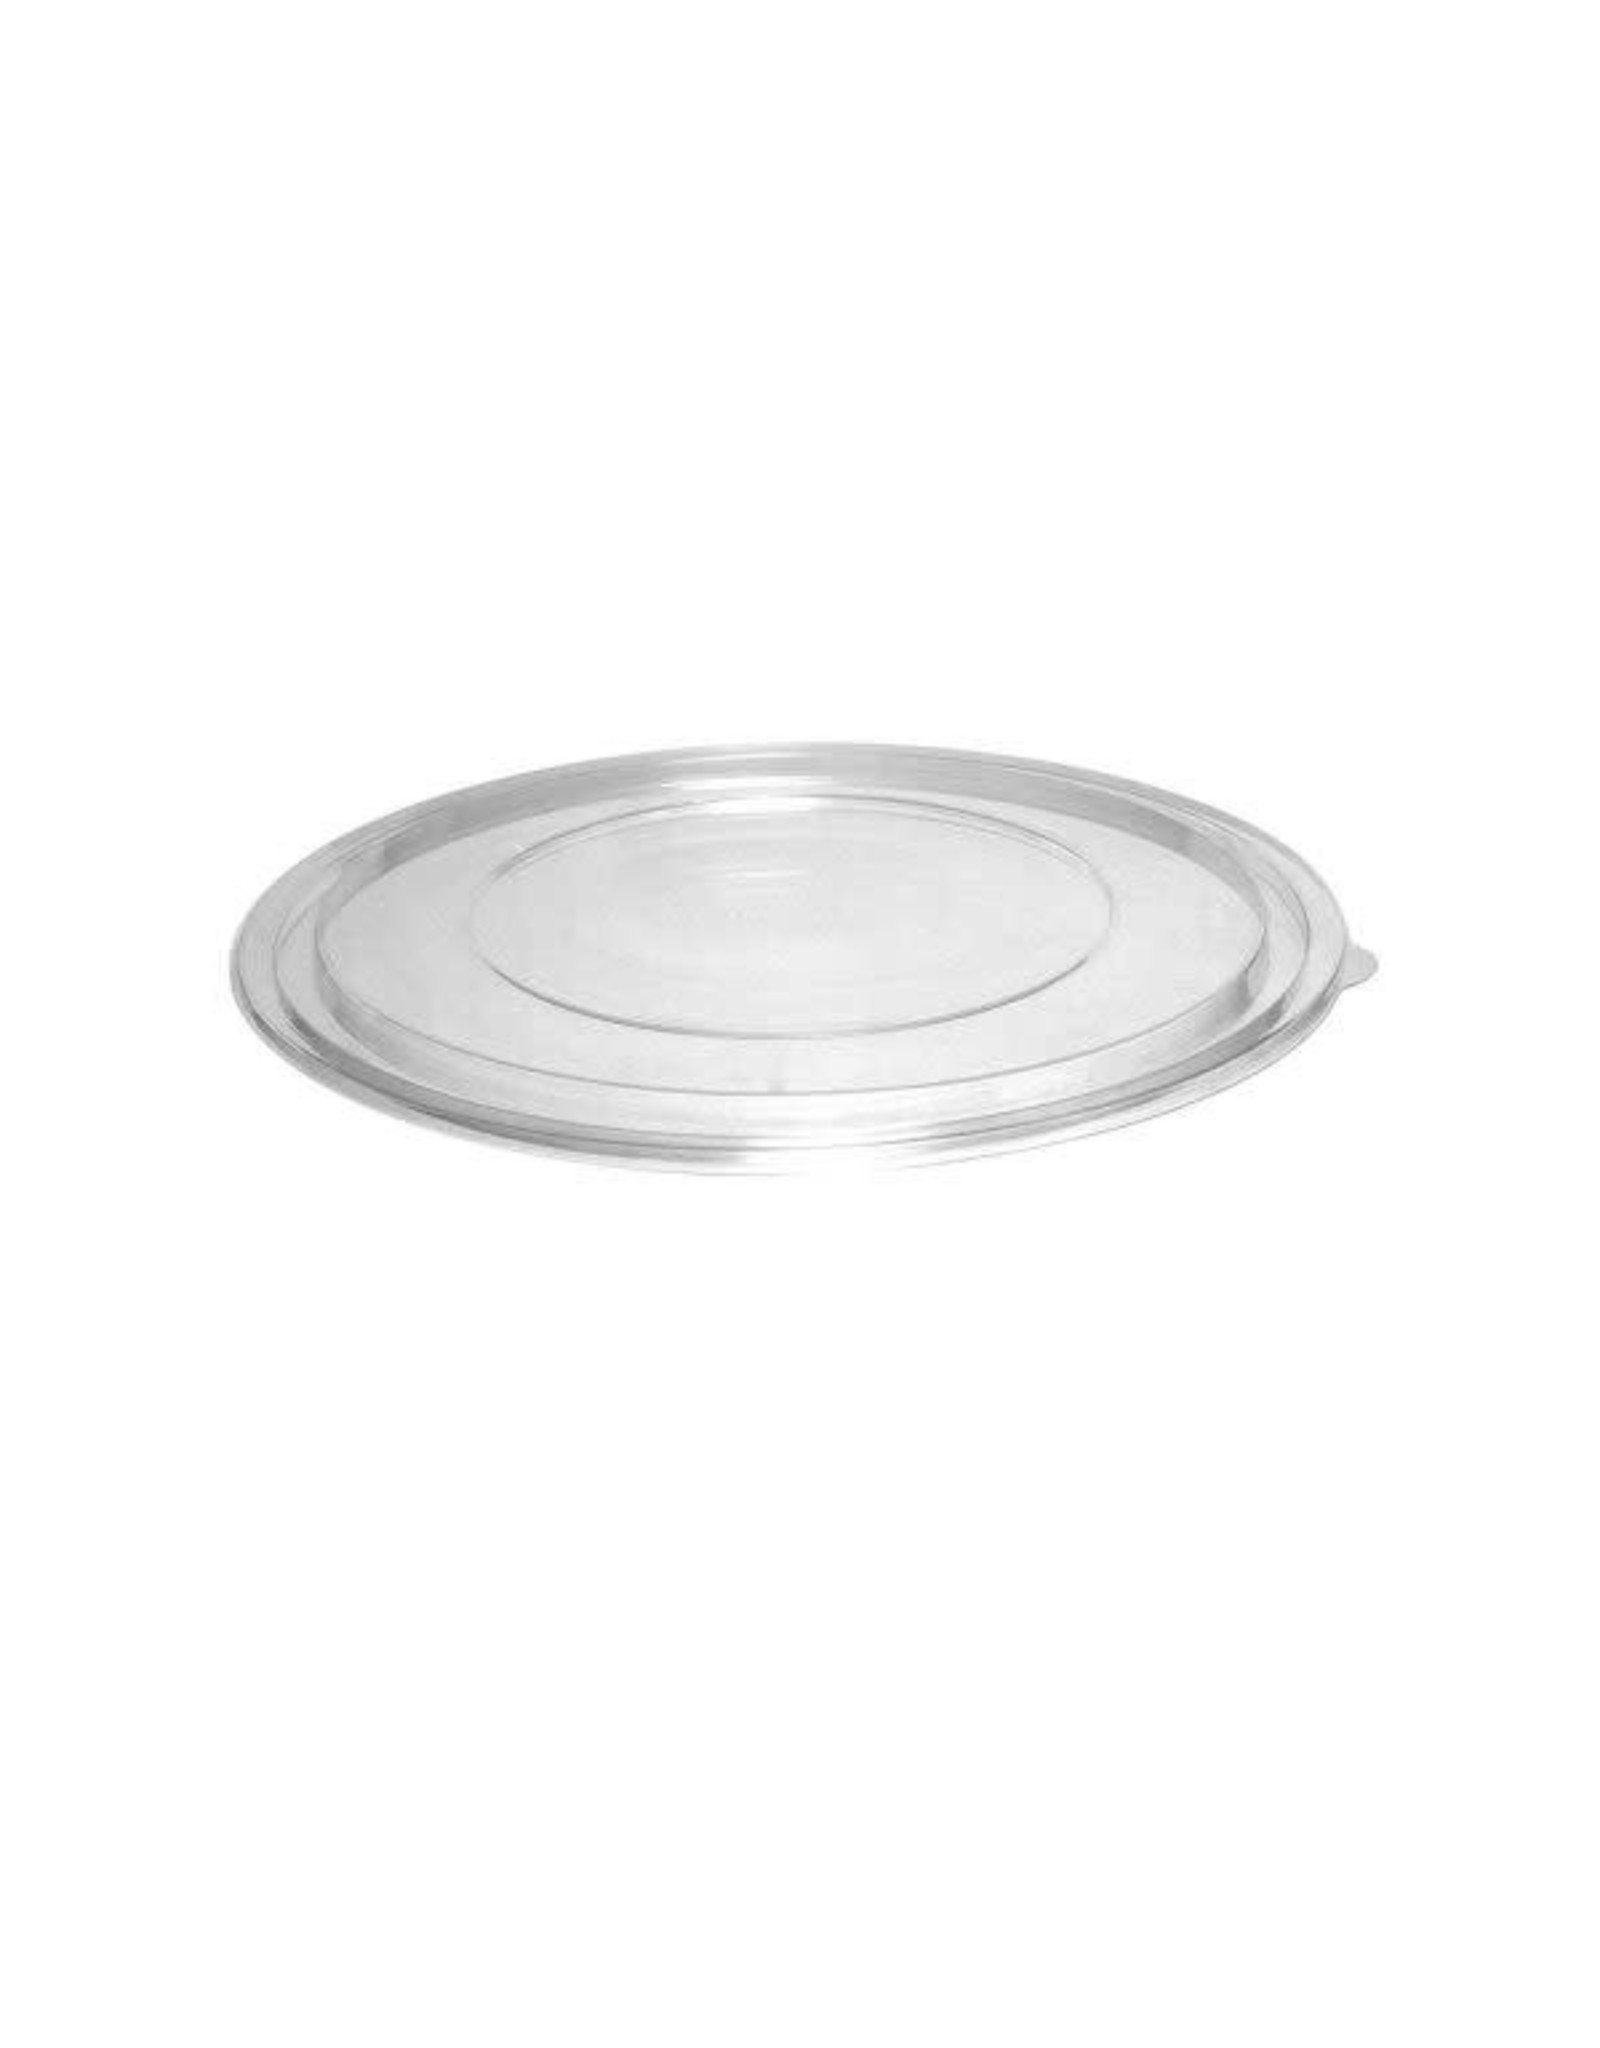 northwest 80oz Clear Lid - 1ct.